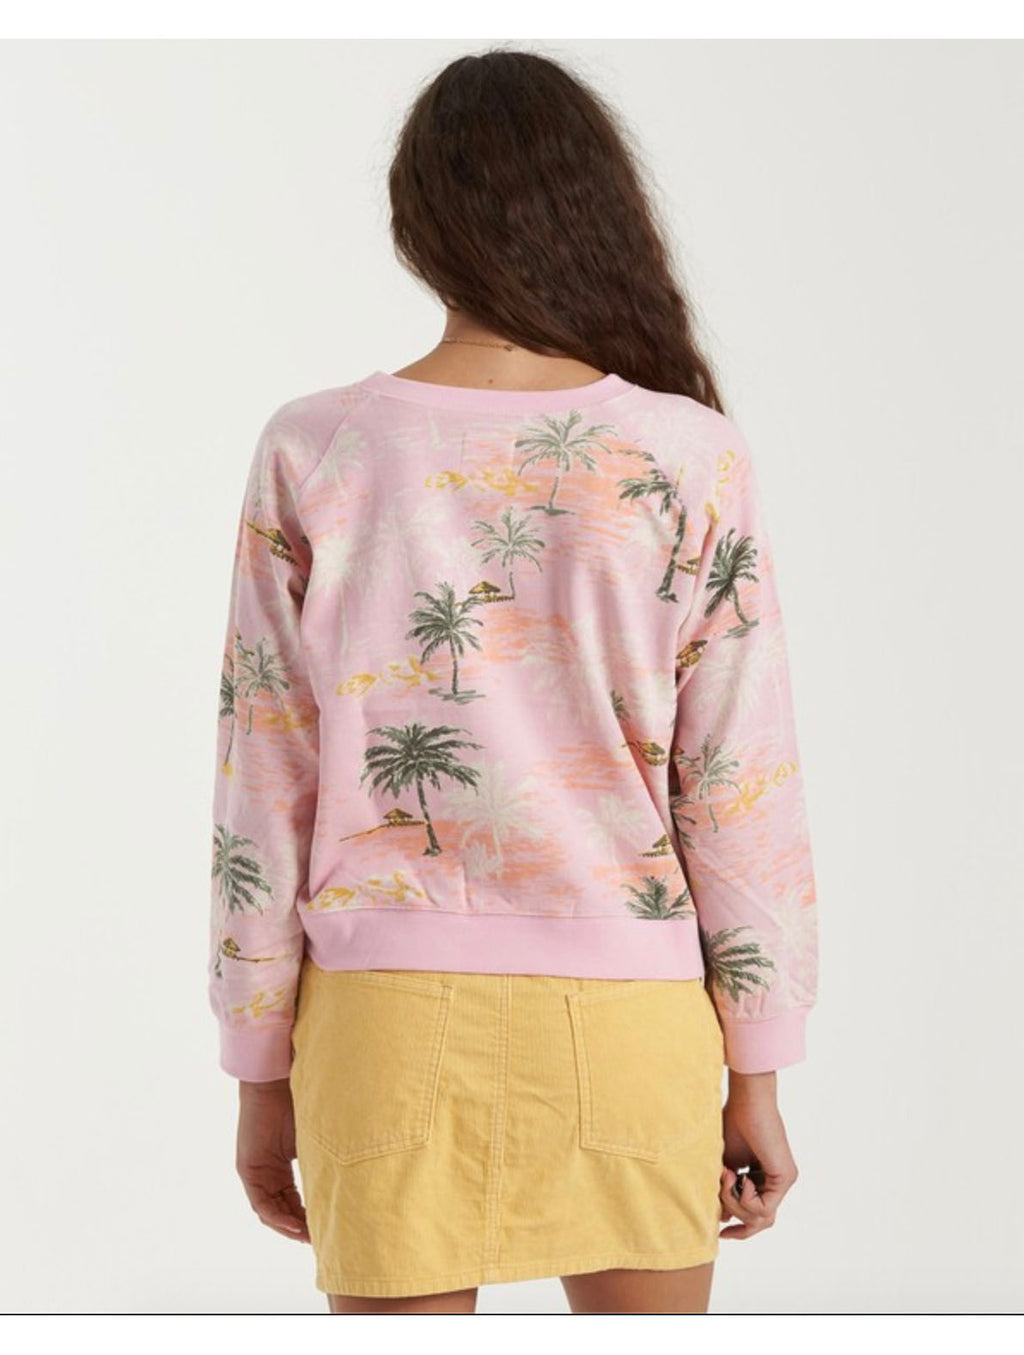 Billabong Sun Shrunk Sweatshirt in Multi